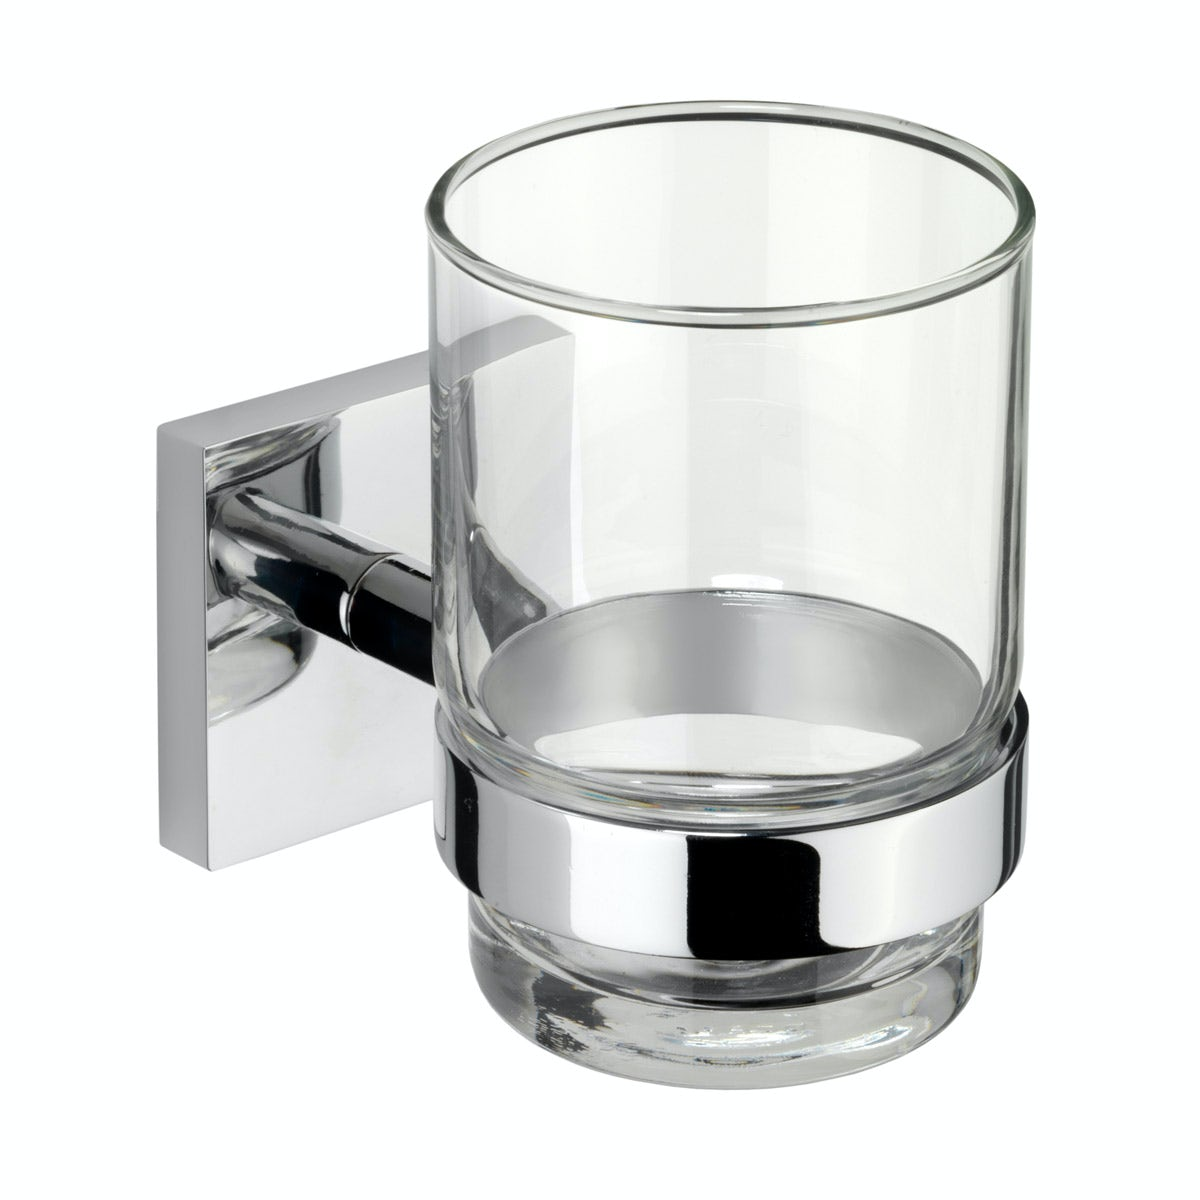 Croydex Chester tumbler & holder